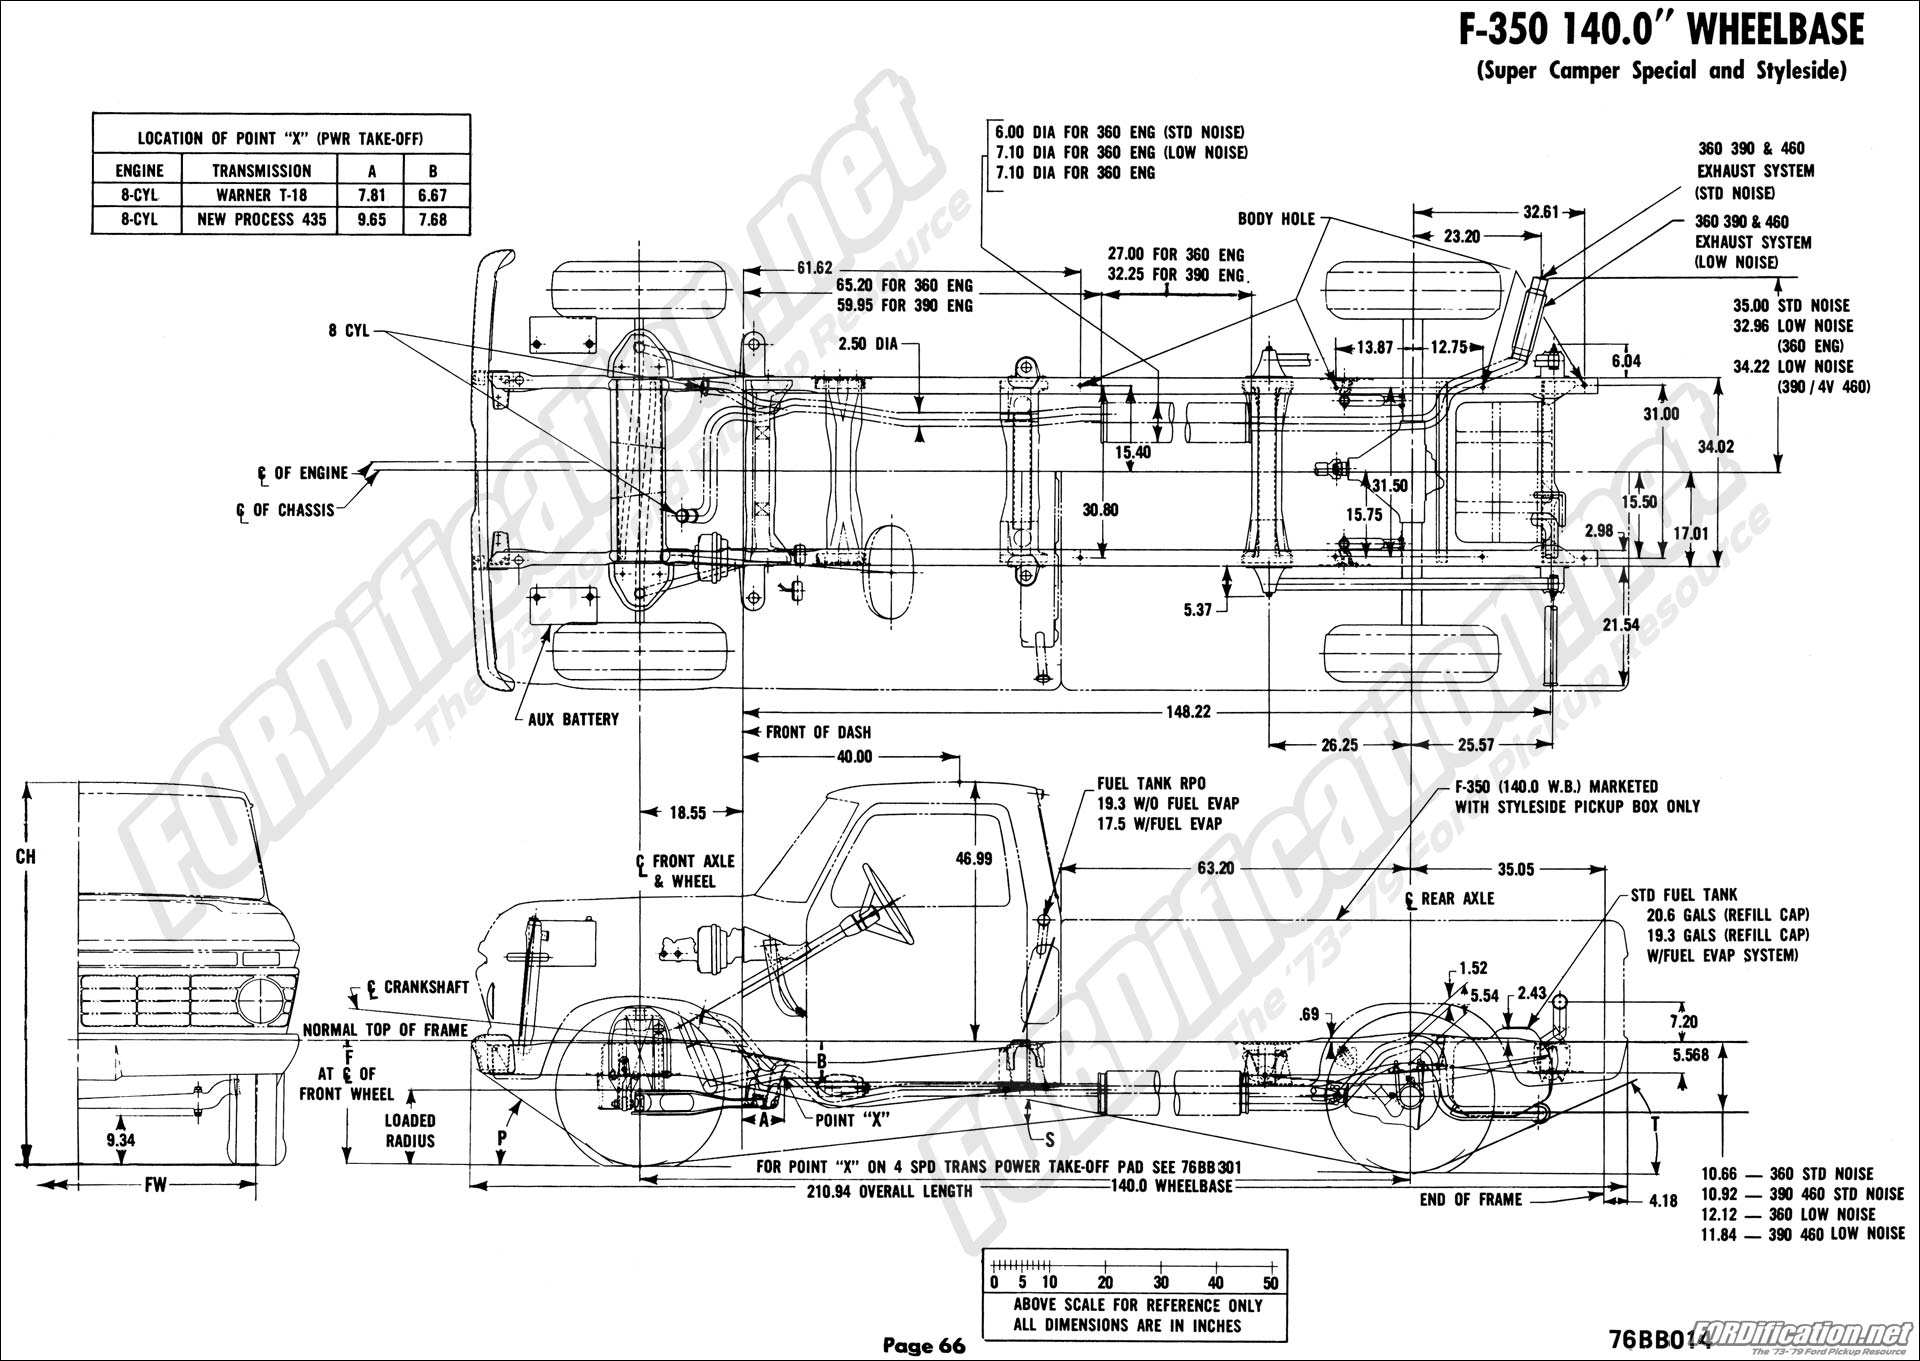 2016 ford f150 tail light wiring diagram da lite motorized screen 1951 f1 truck database drawing at getdrawings free for personal use 1949